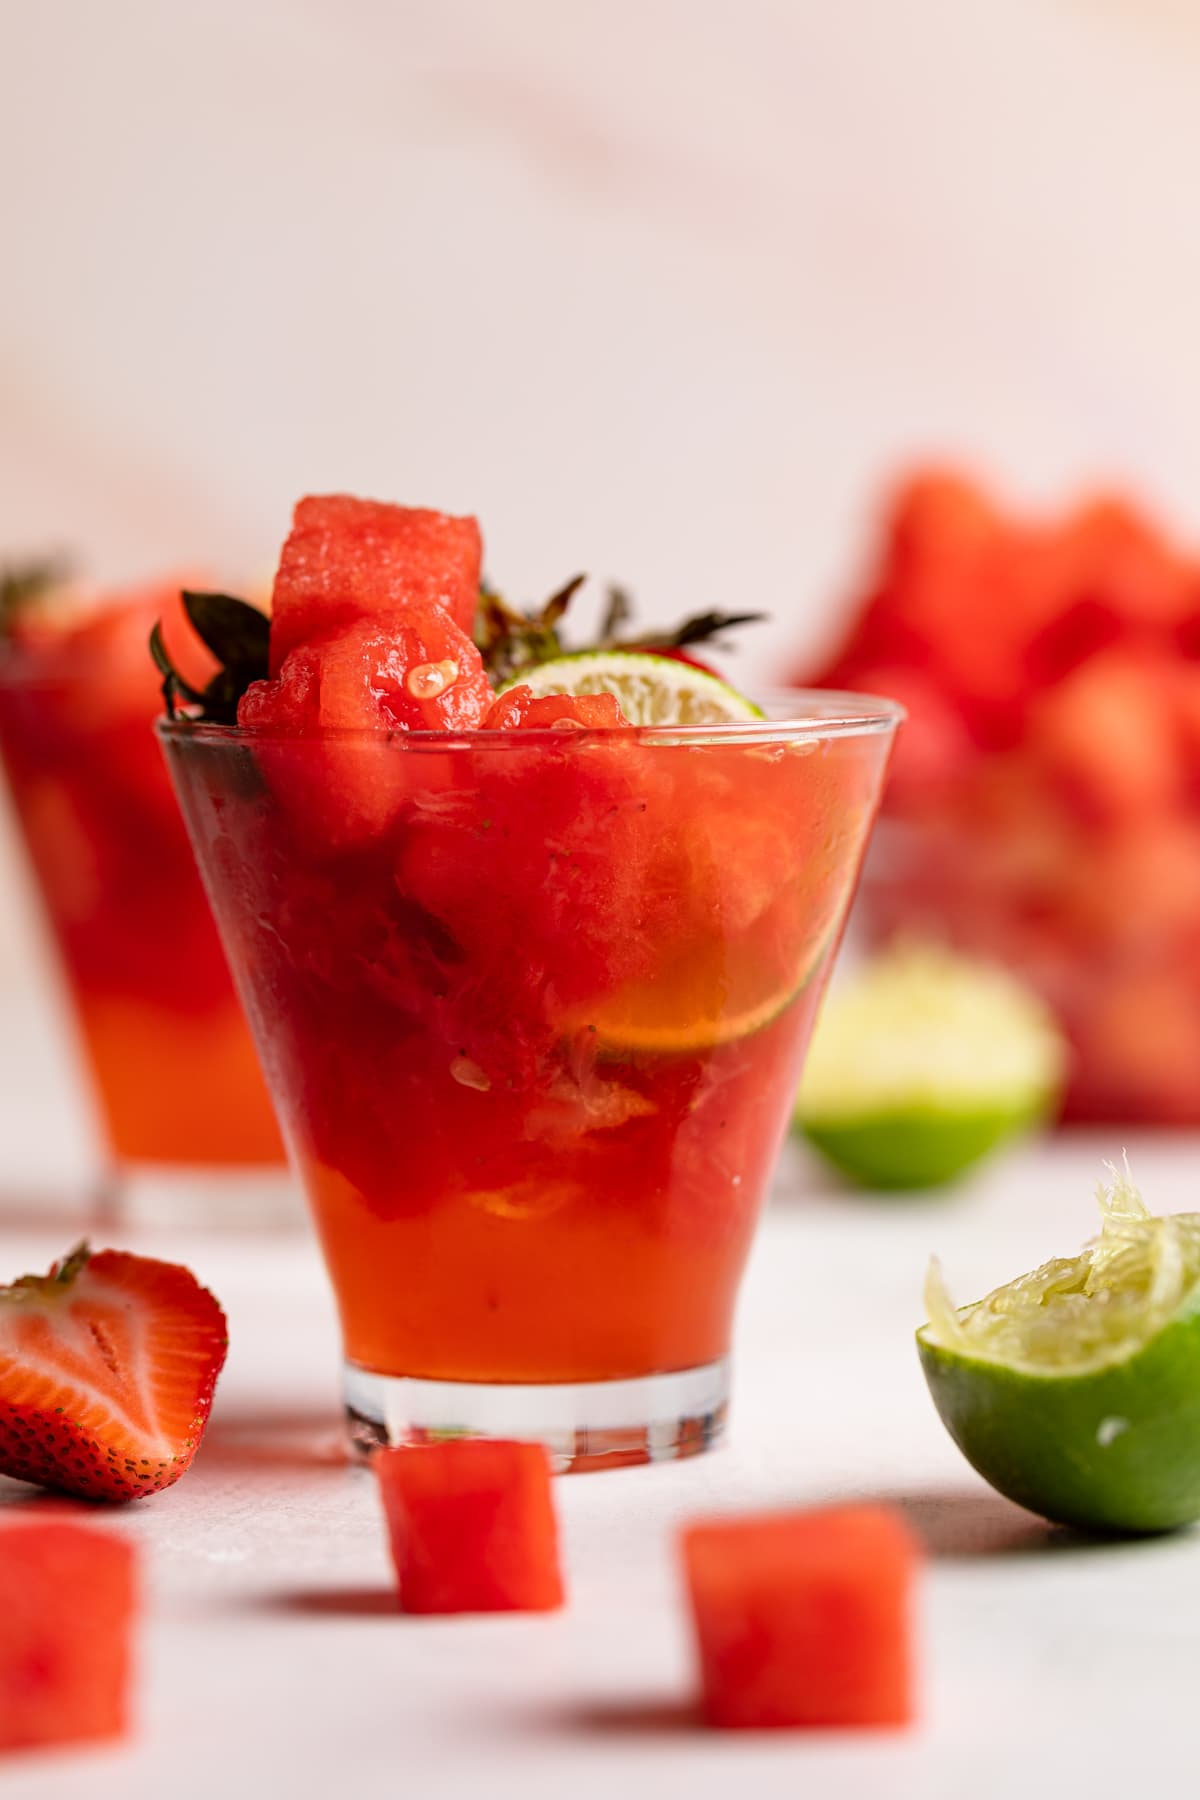 Watermelon Strawberry Lime Mocktail with fresh watermelon cubes, berries and lime halves